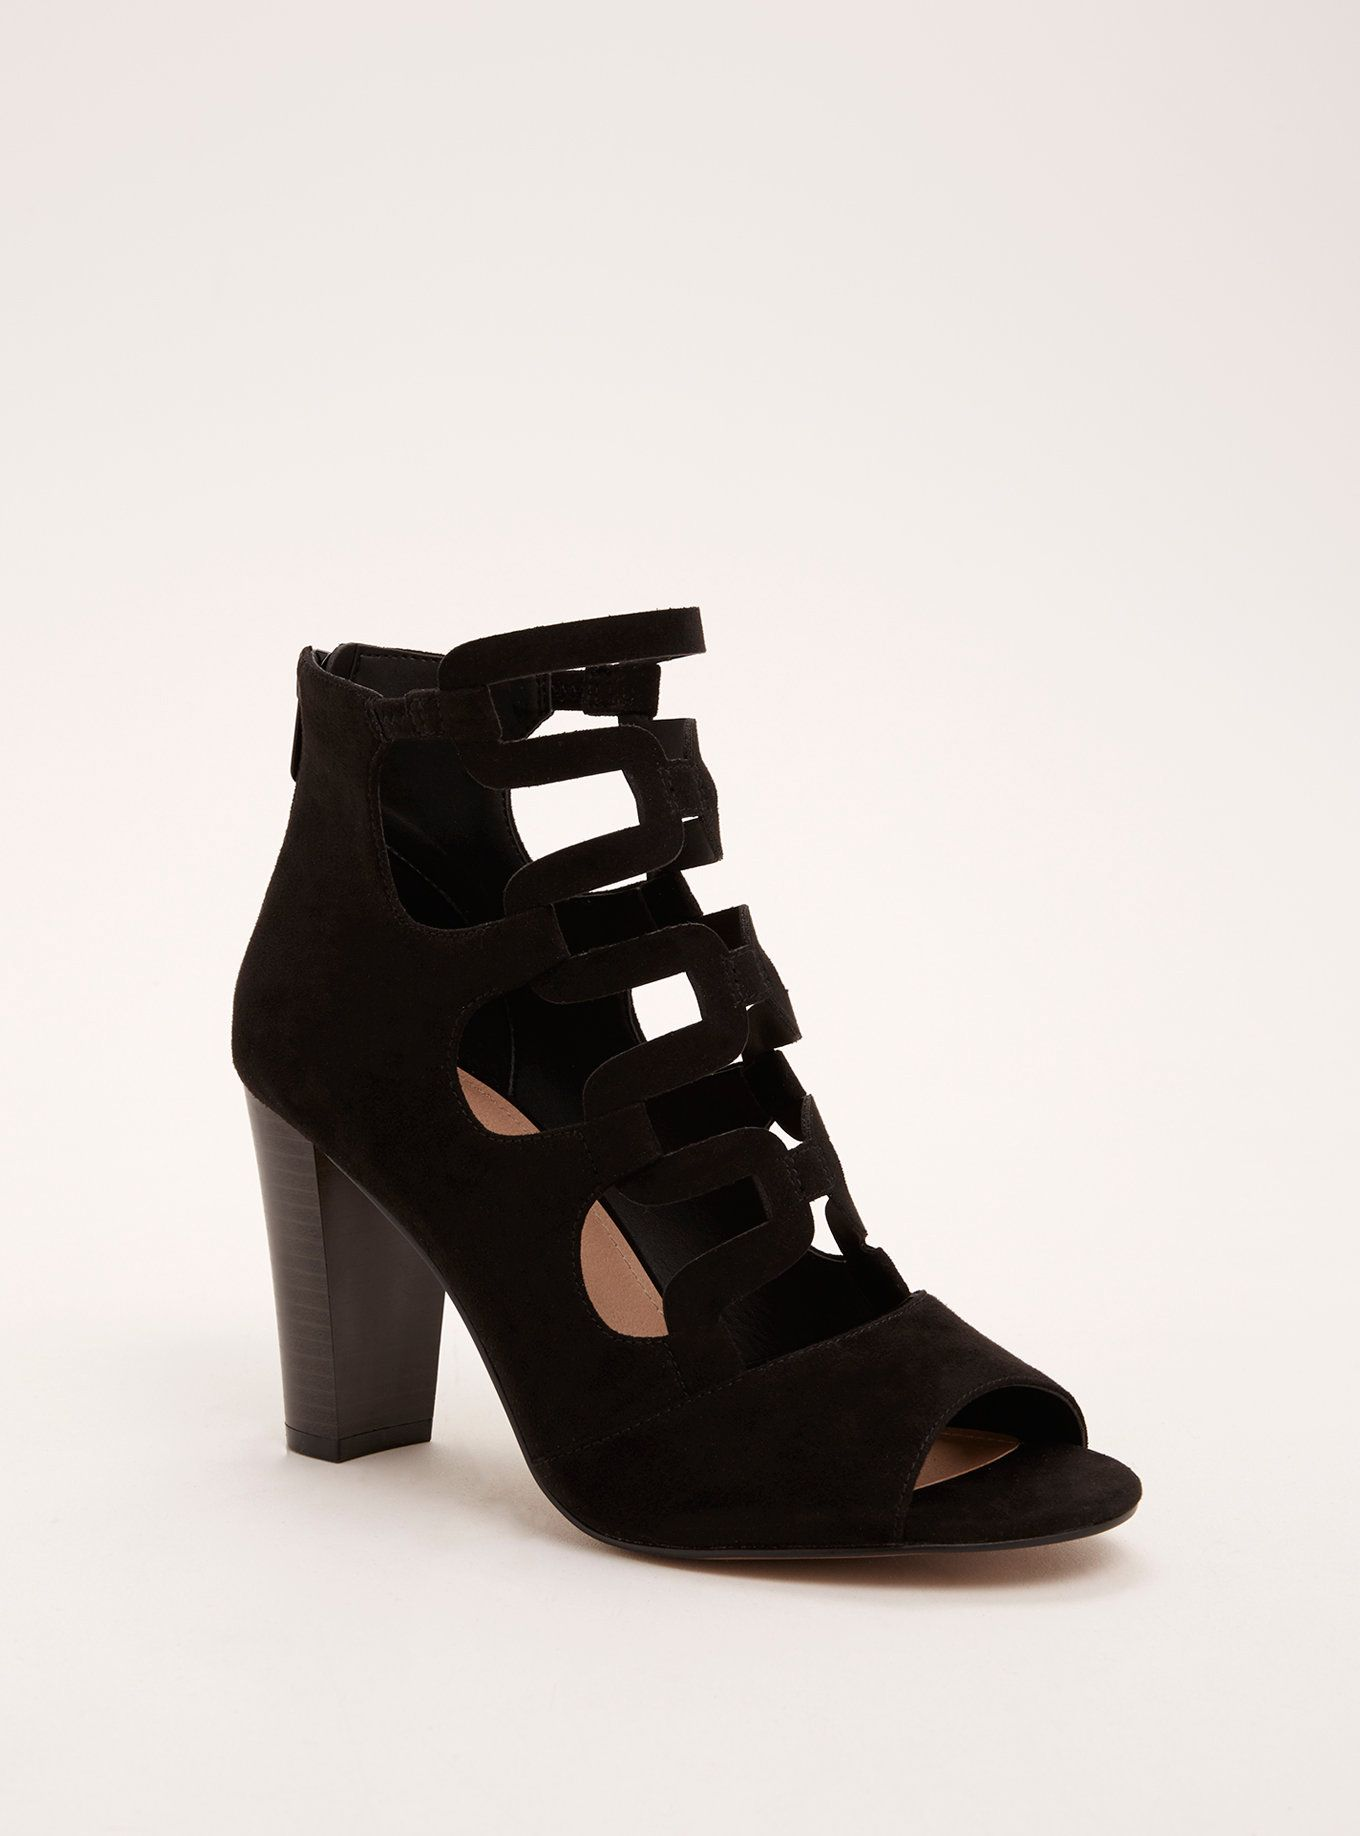 740ecfc5735 Strappy cage stacked heels wide width need wide width shoes jpg 1360x1836 Plus  size wide width · Download Image